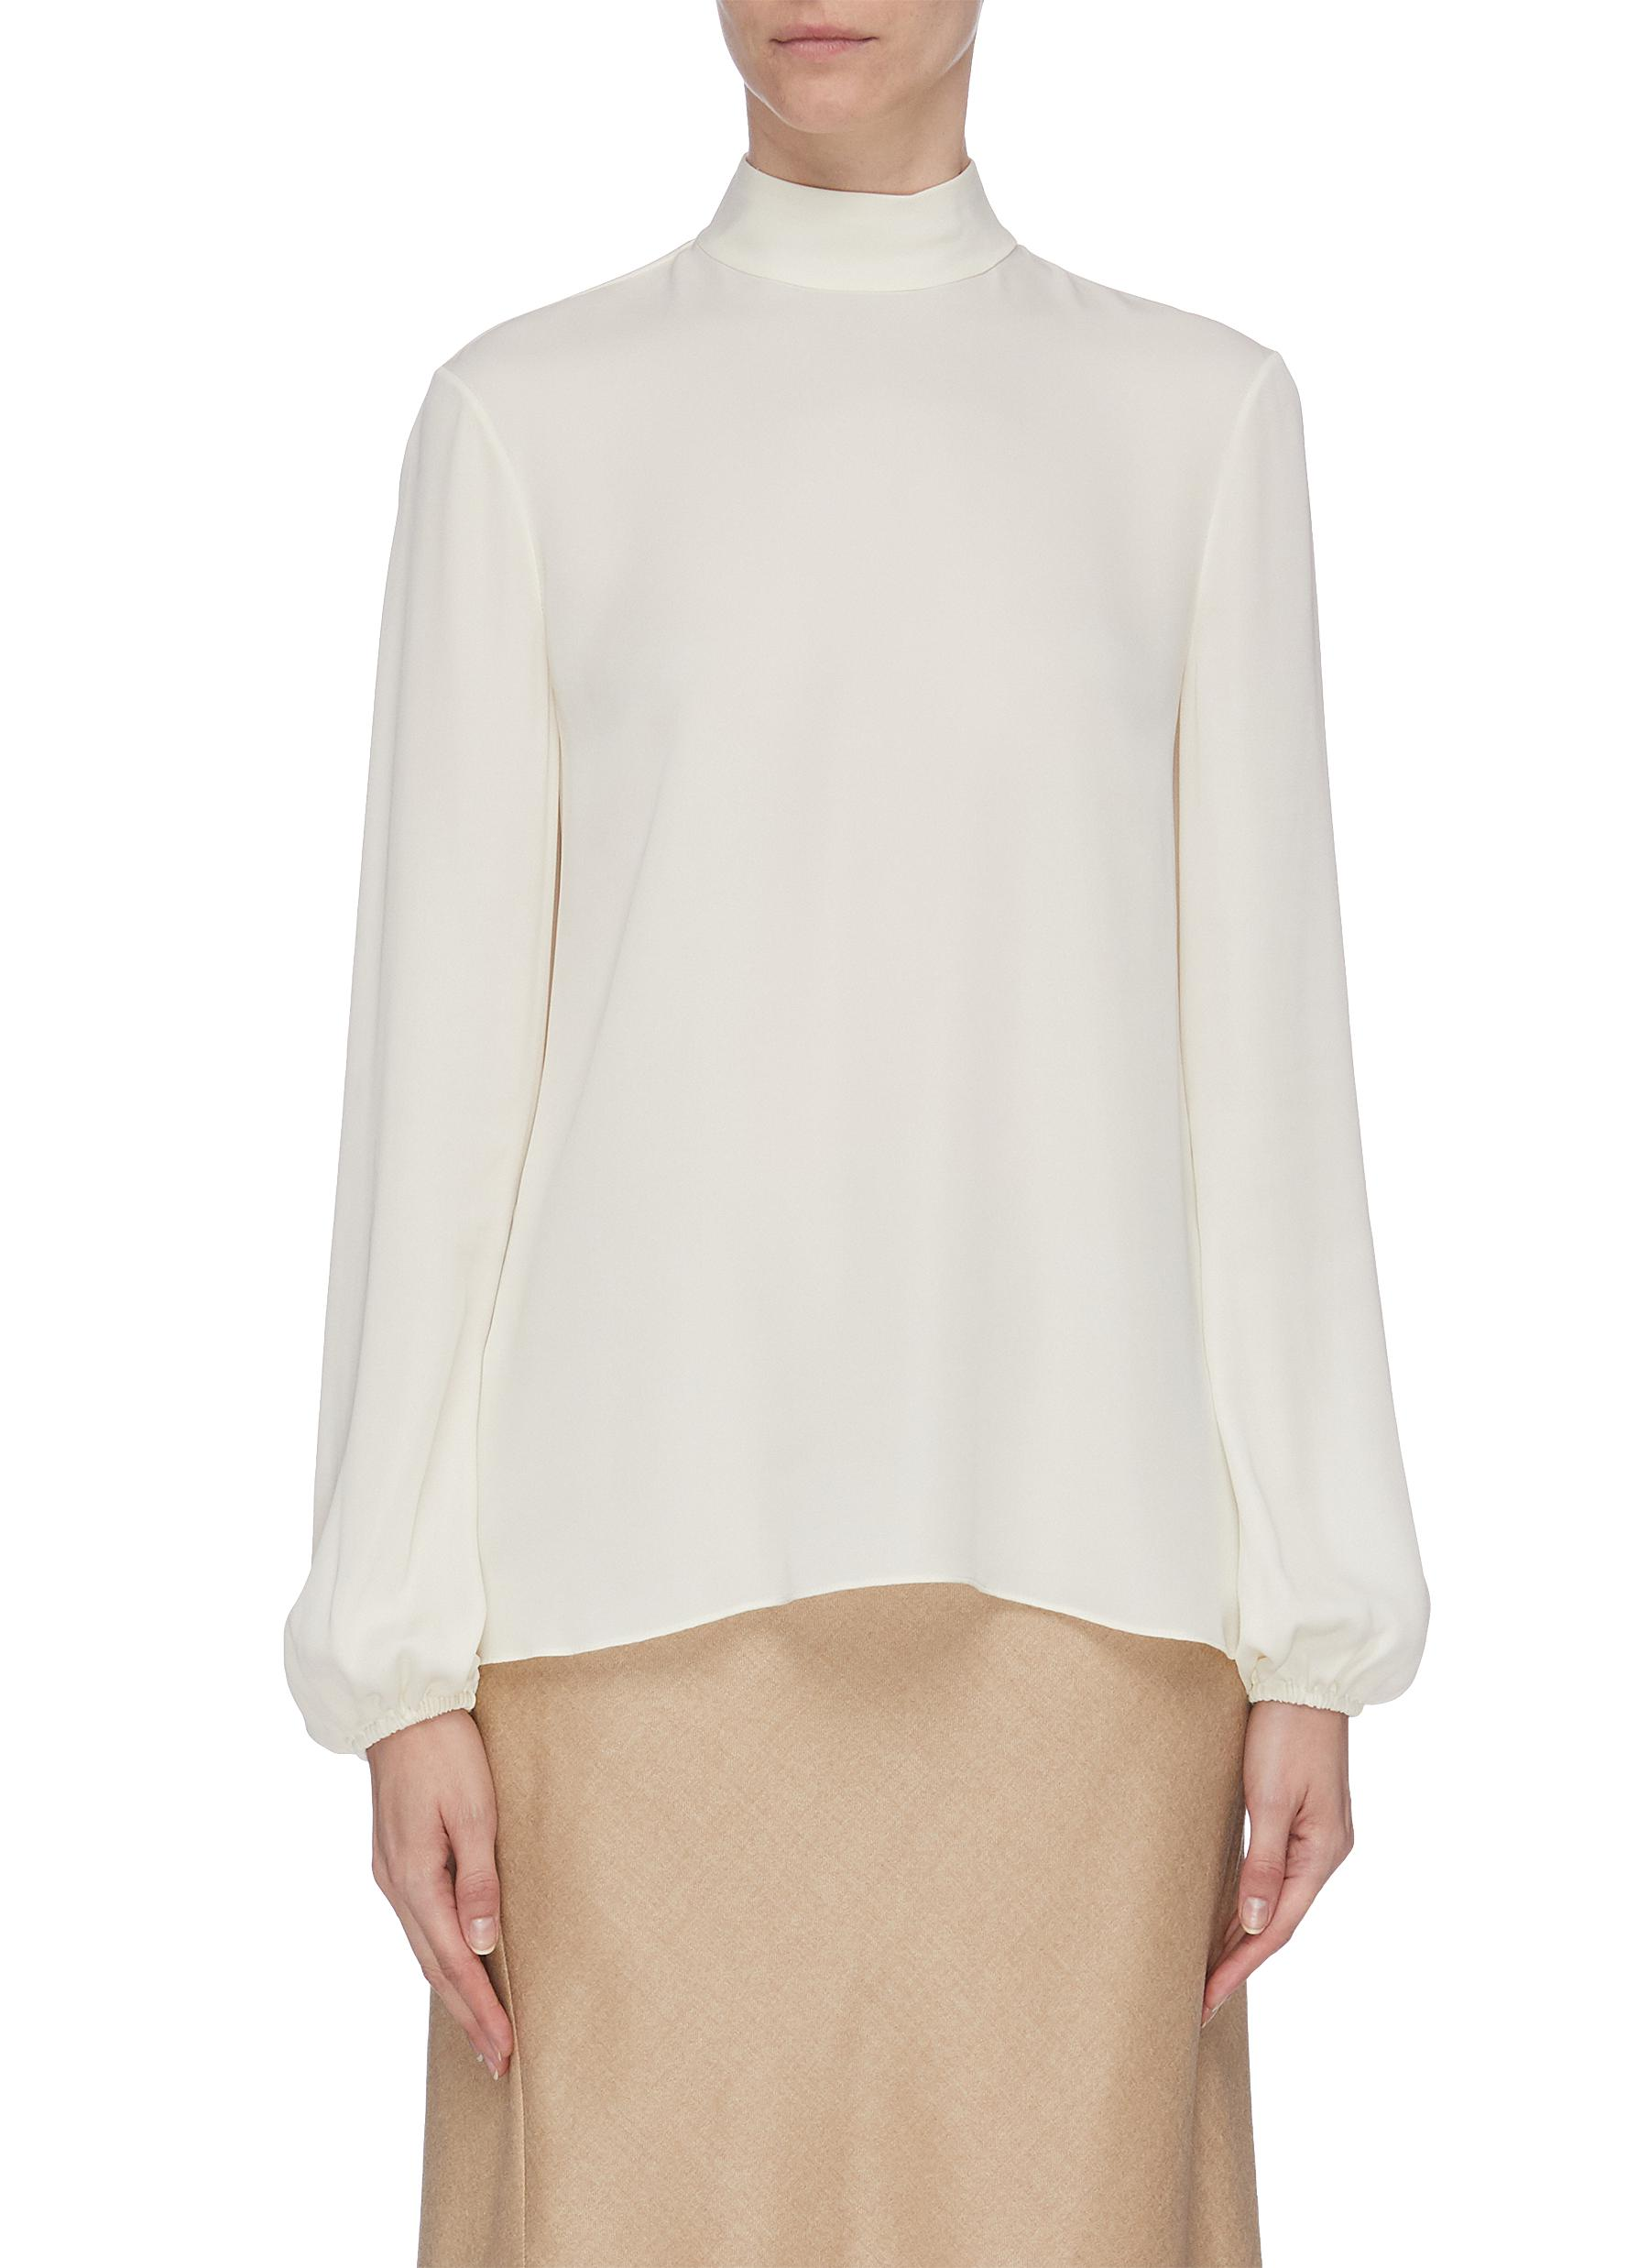 Bell sleeve top by Theory